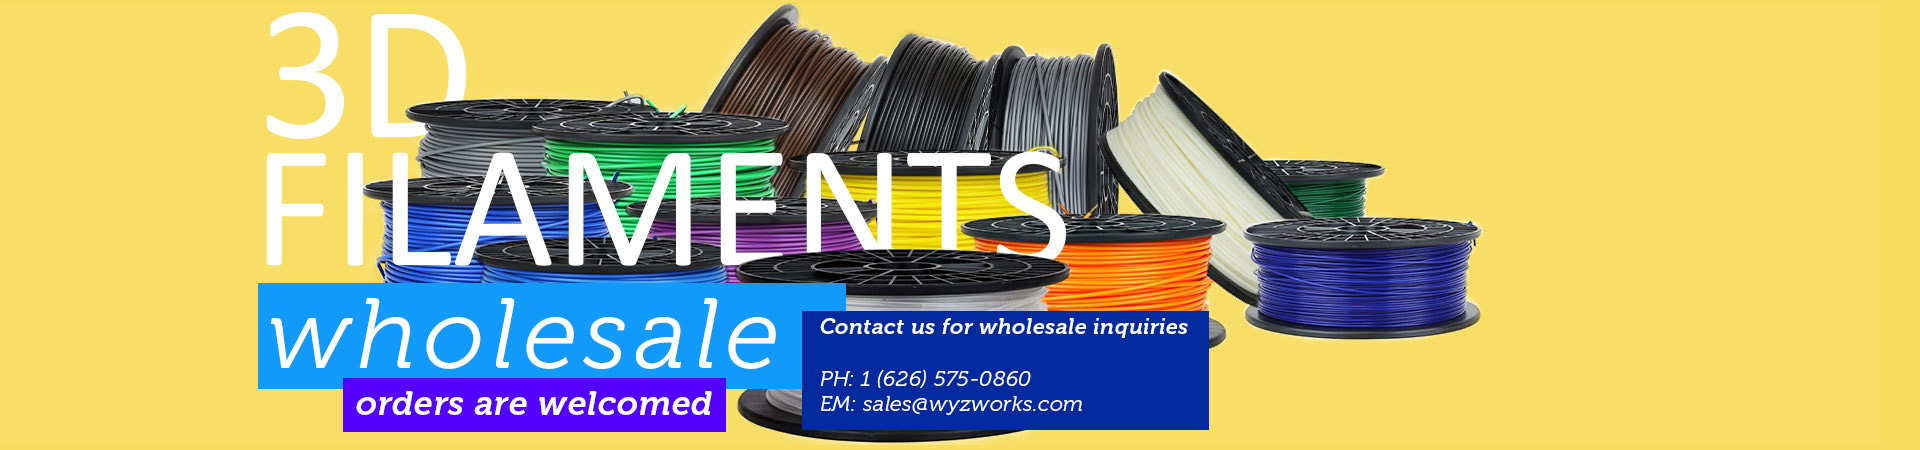 3d_filament_wholesale_flyer_1920_z